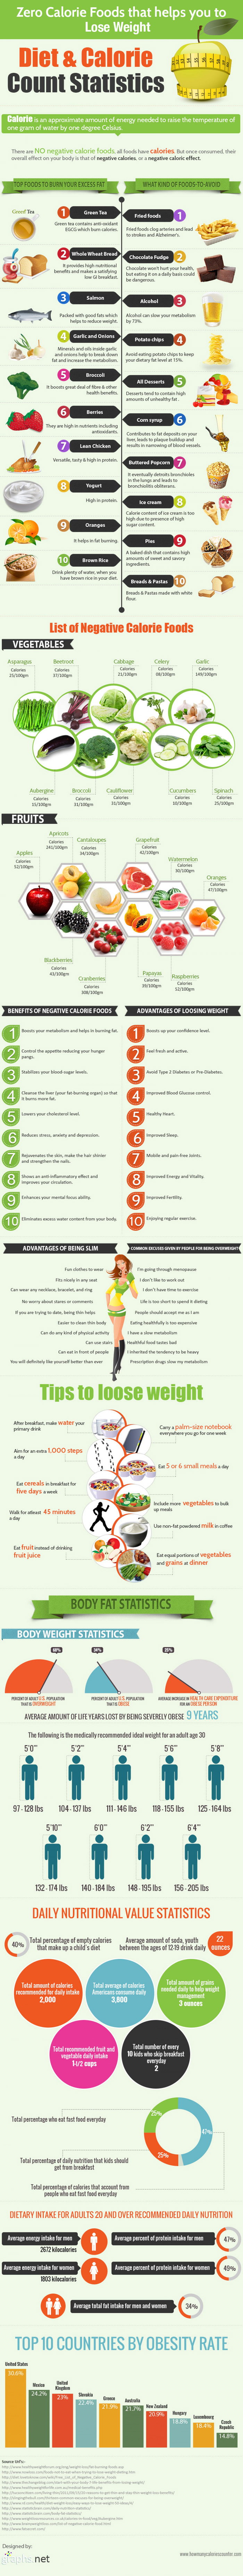 howtoloseweight_51dfbe0dc7189_w1500a